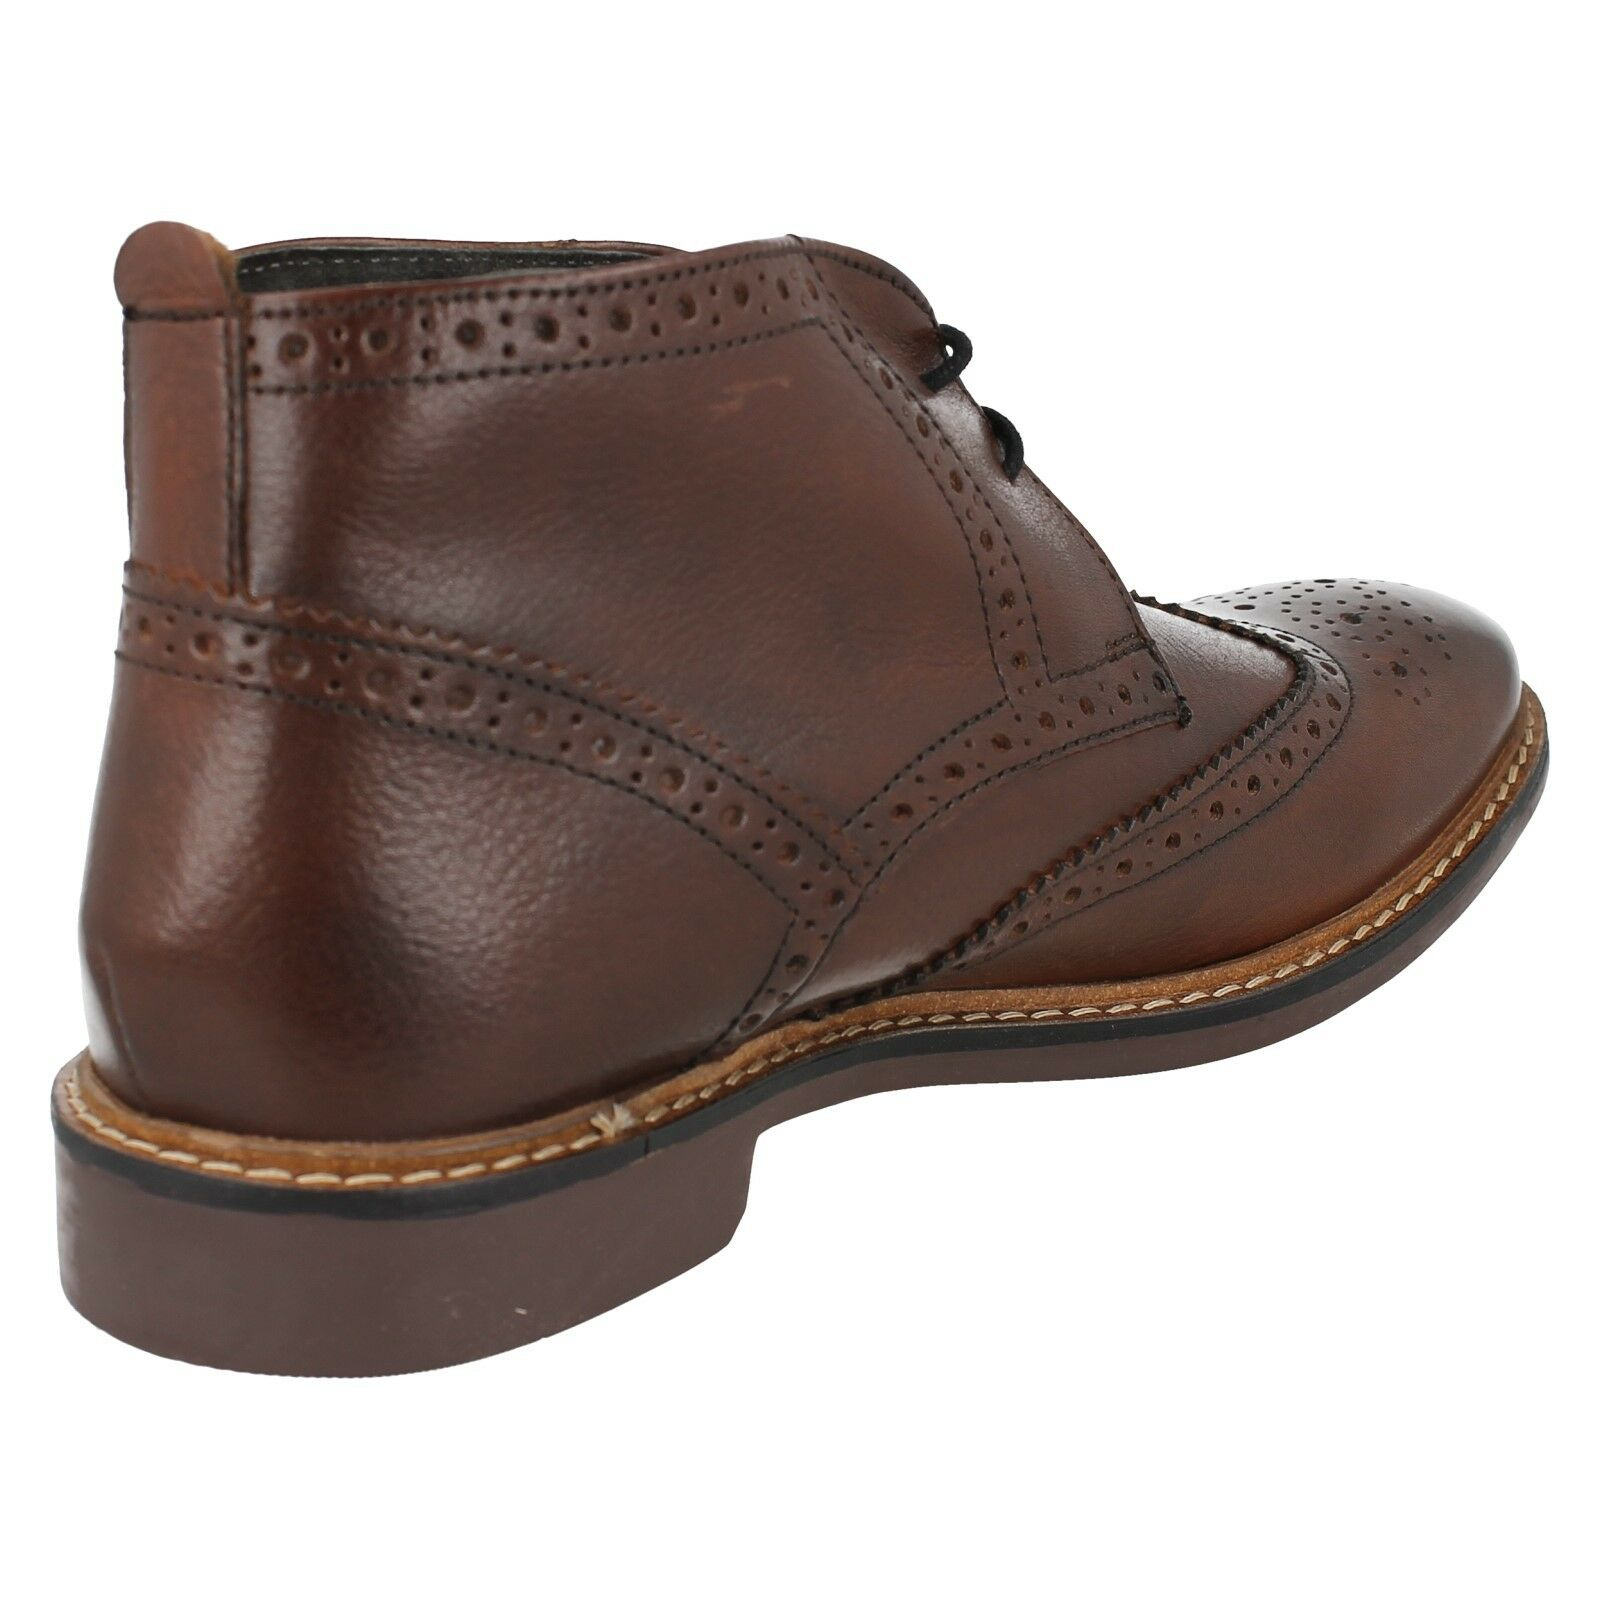 Herren BROWN LEATHER FORMAL BASE SMART BROGUE ANKLE Stiefel BASE FORMAL LONDON TRICK SIZE 7 - 12 aea84e